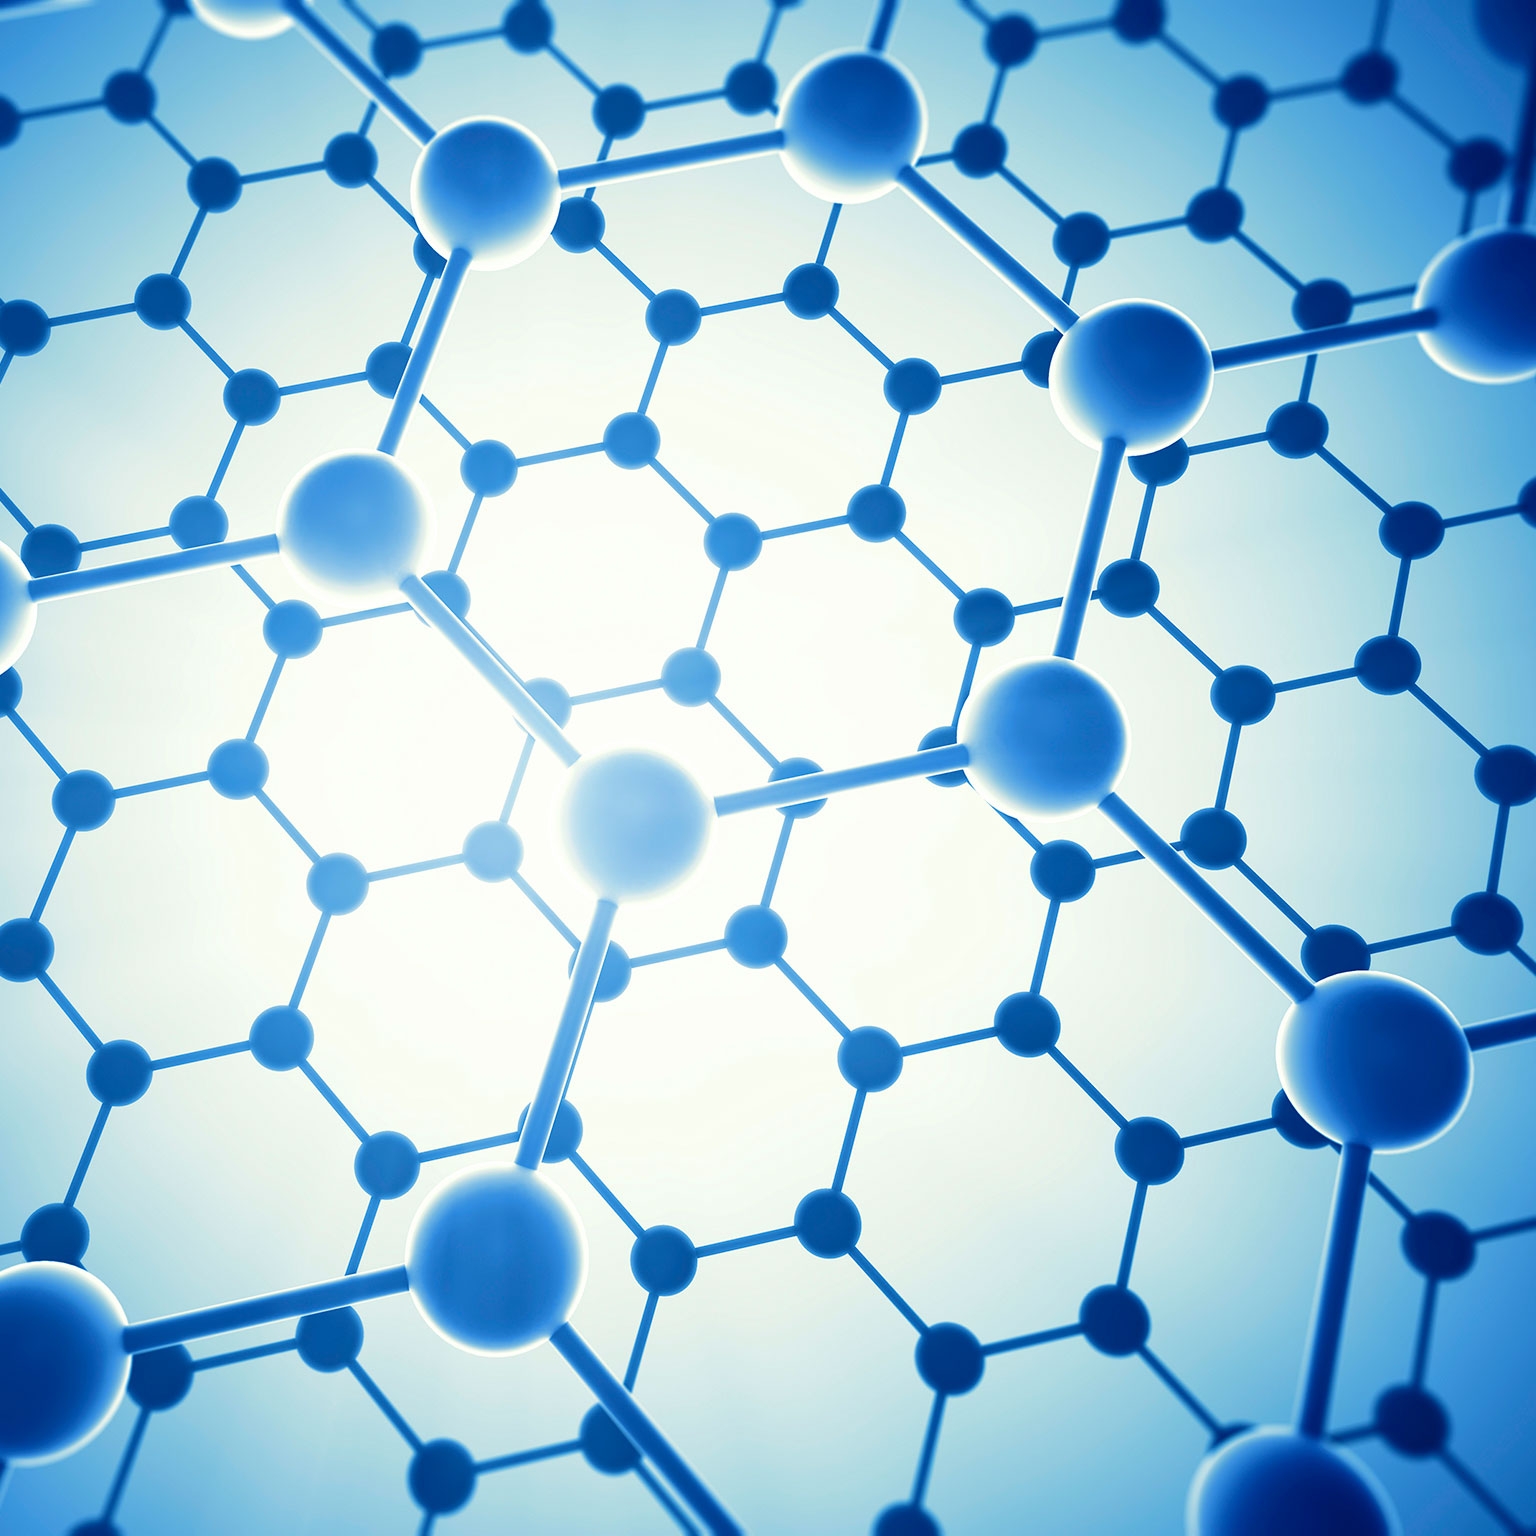 Graphene: The next S-curve for semiconductors? | McKinsey